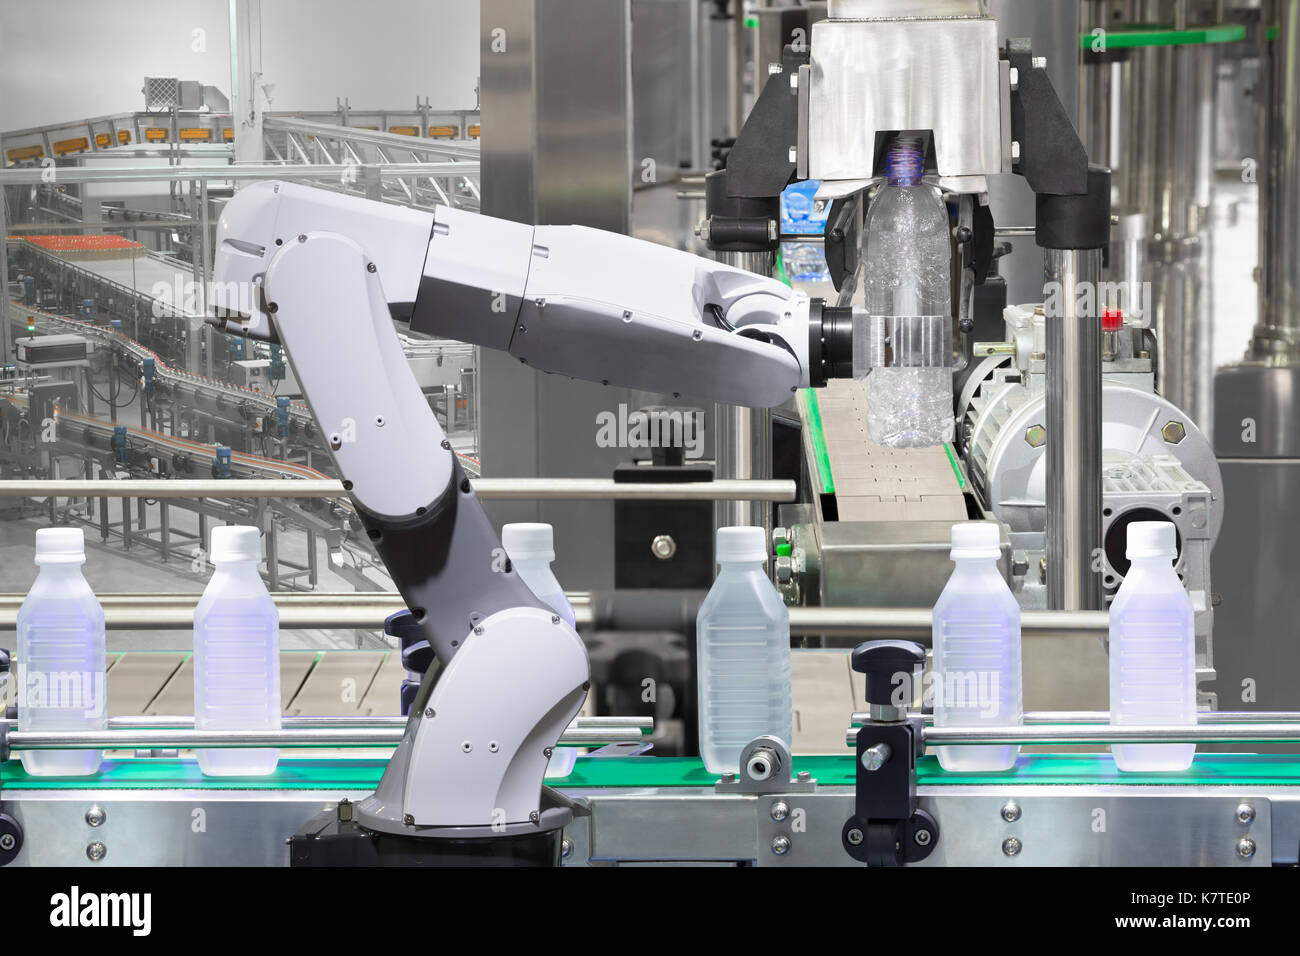 Robotic arm holding water bottles on drink production line in factory, Industry 4.0 concept - Stock Image